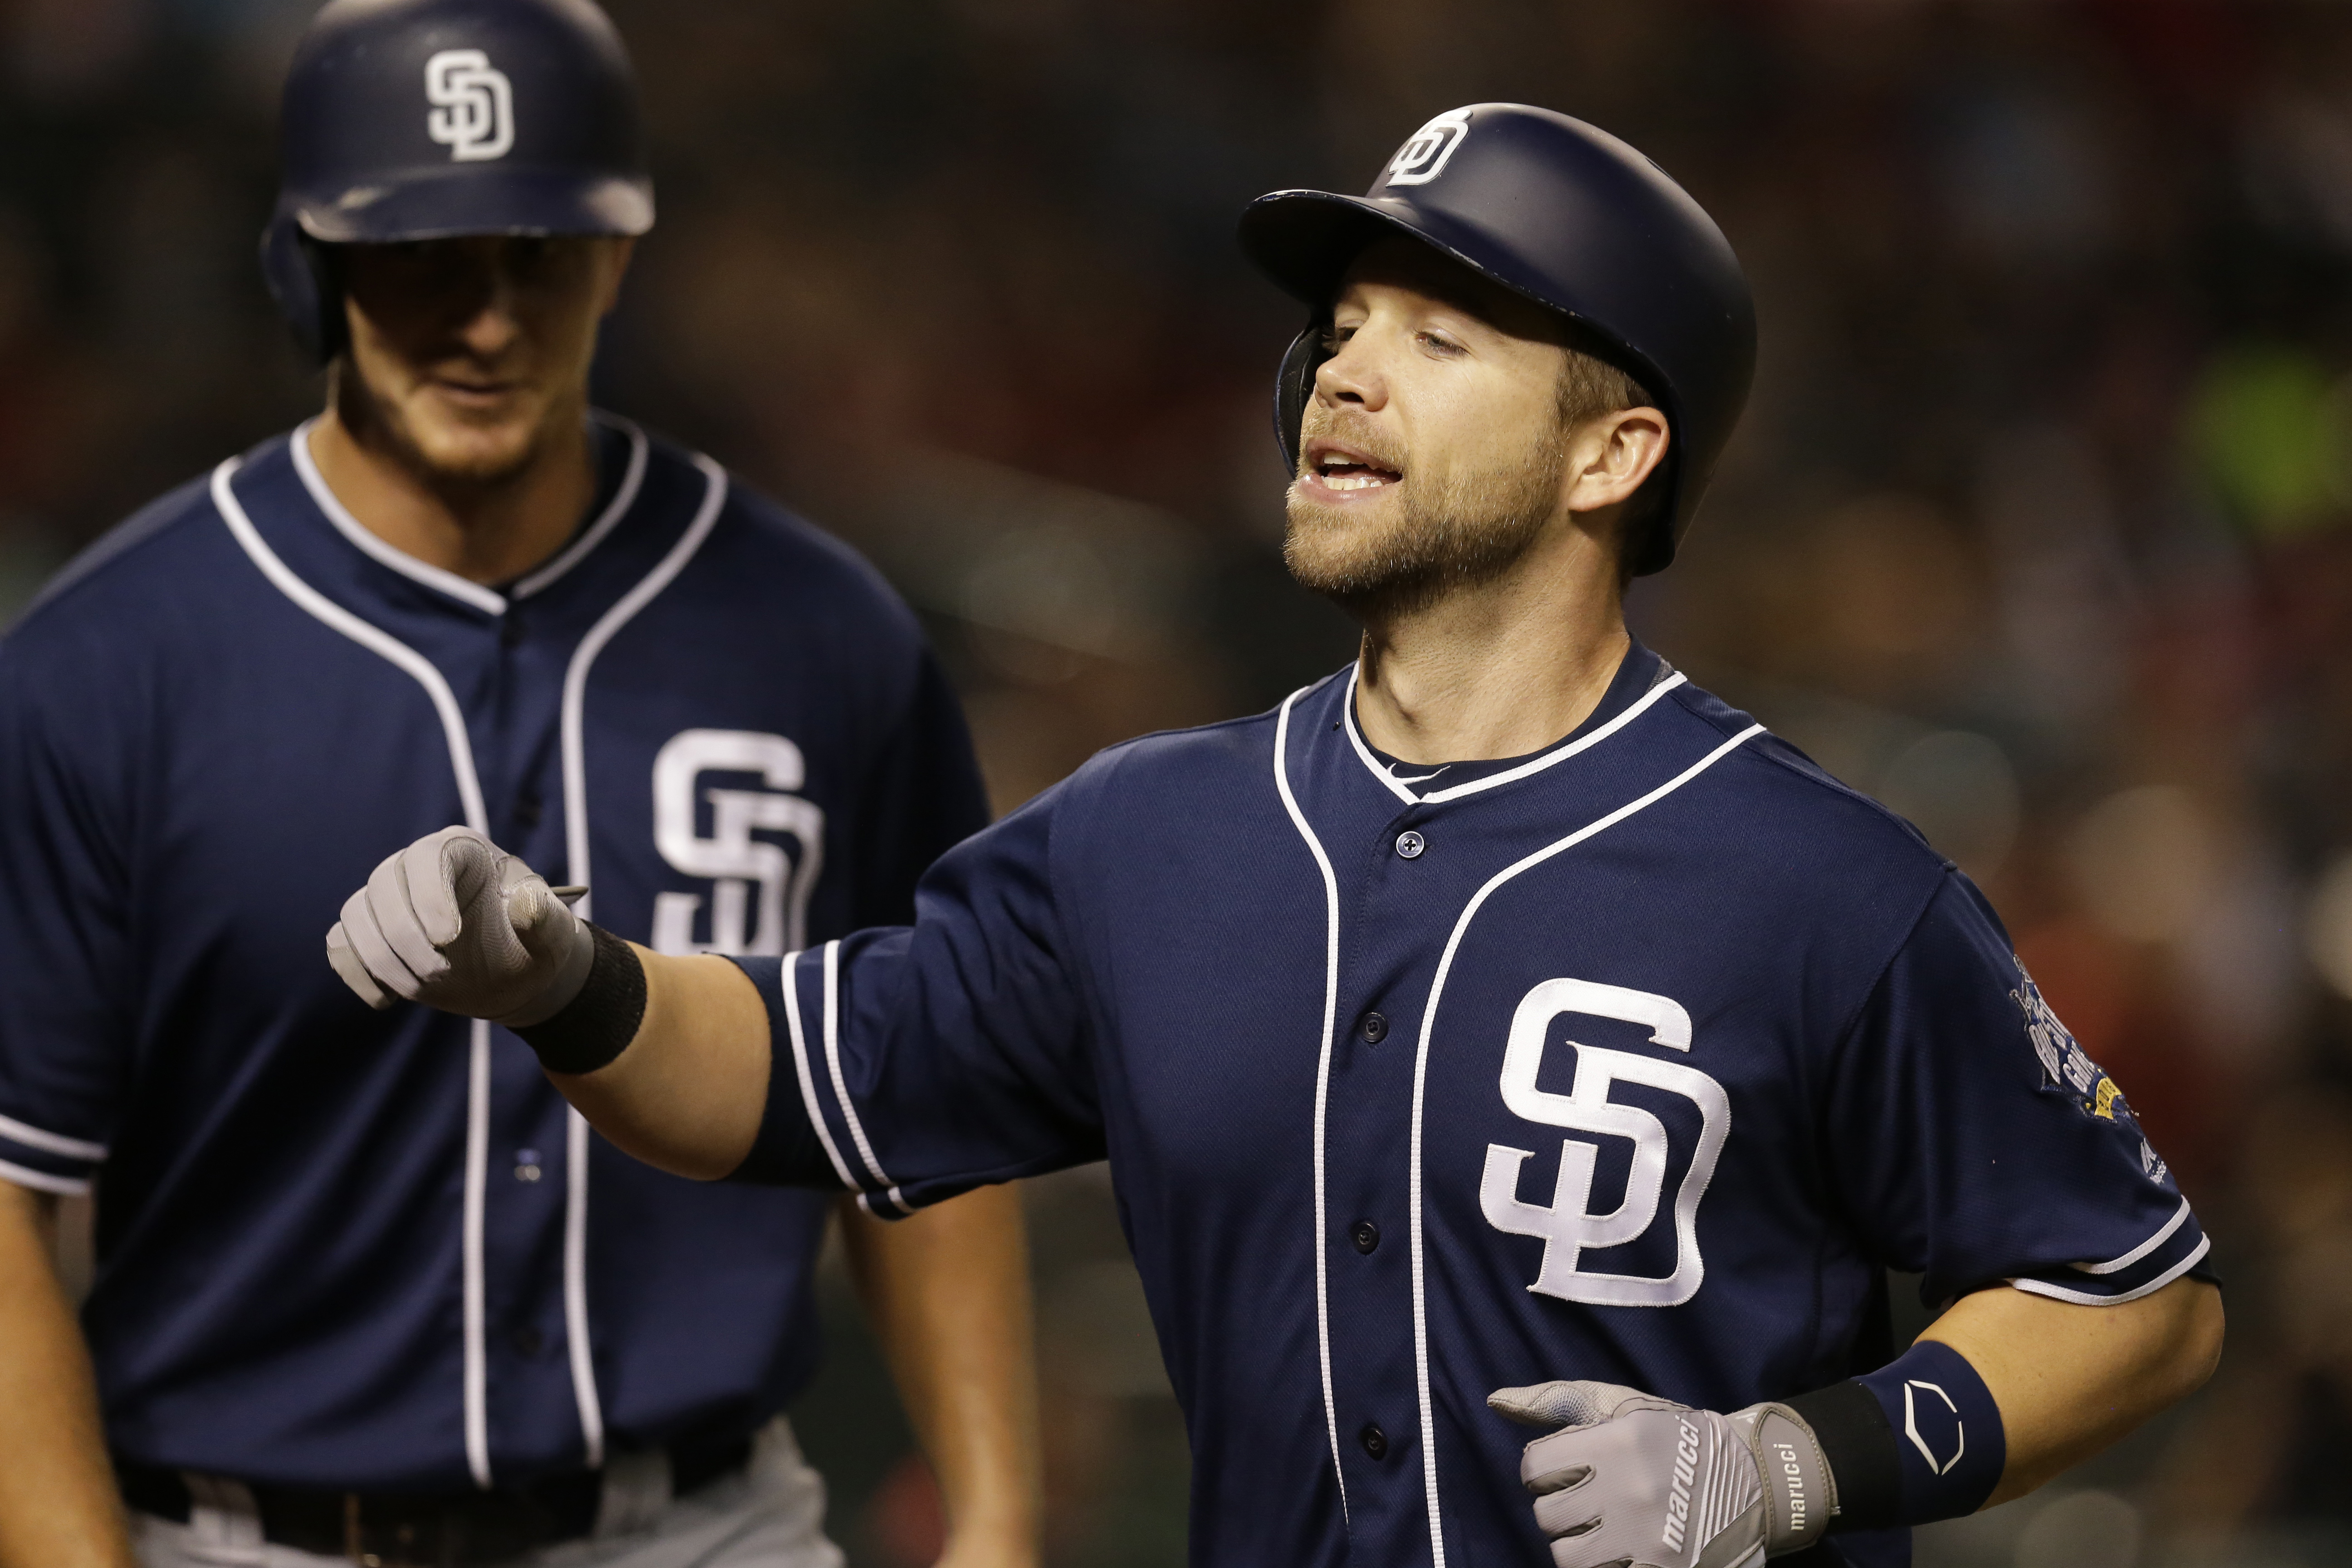 San Diego Padres Ryan Schimpf, right, celebrates after hitting a two-run home run against the Arizona Diamondbacks  in the fourth inning during a baseball game, Friday, Sept. 30, 2016, in Phoenix. (AP Photo/Rick Scuteri)